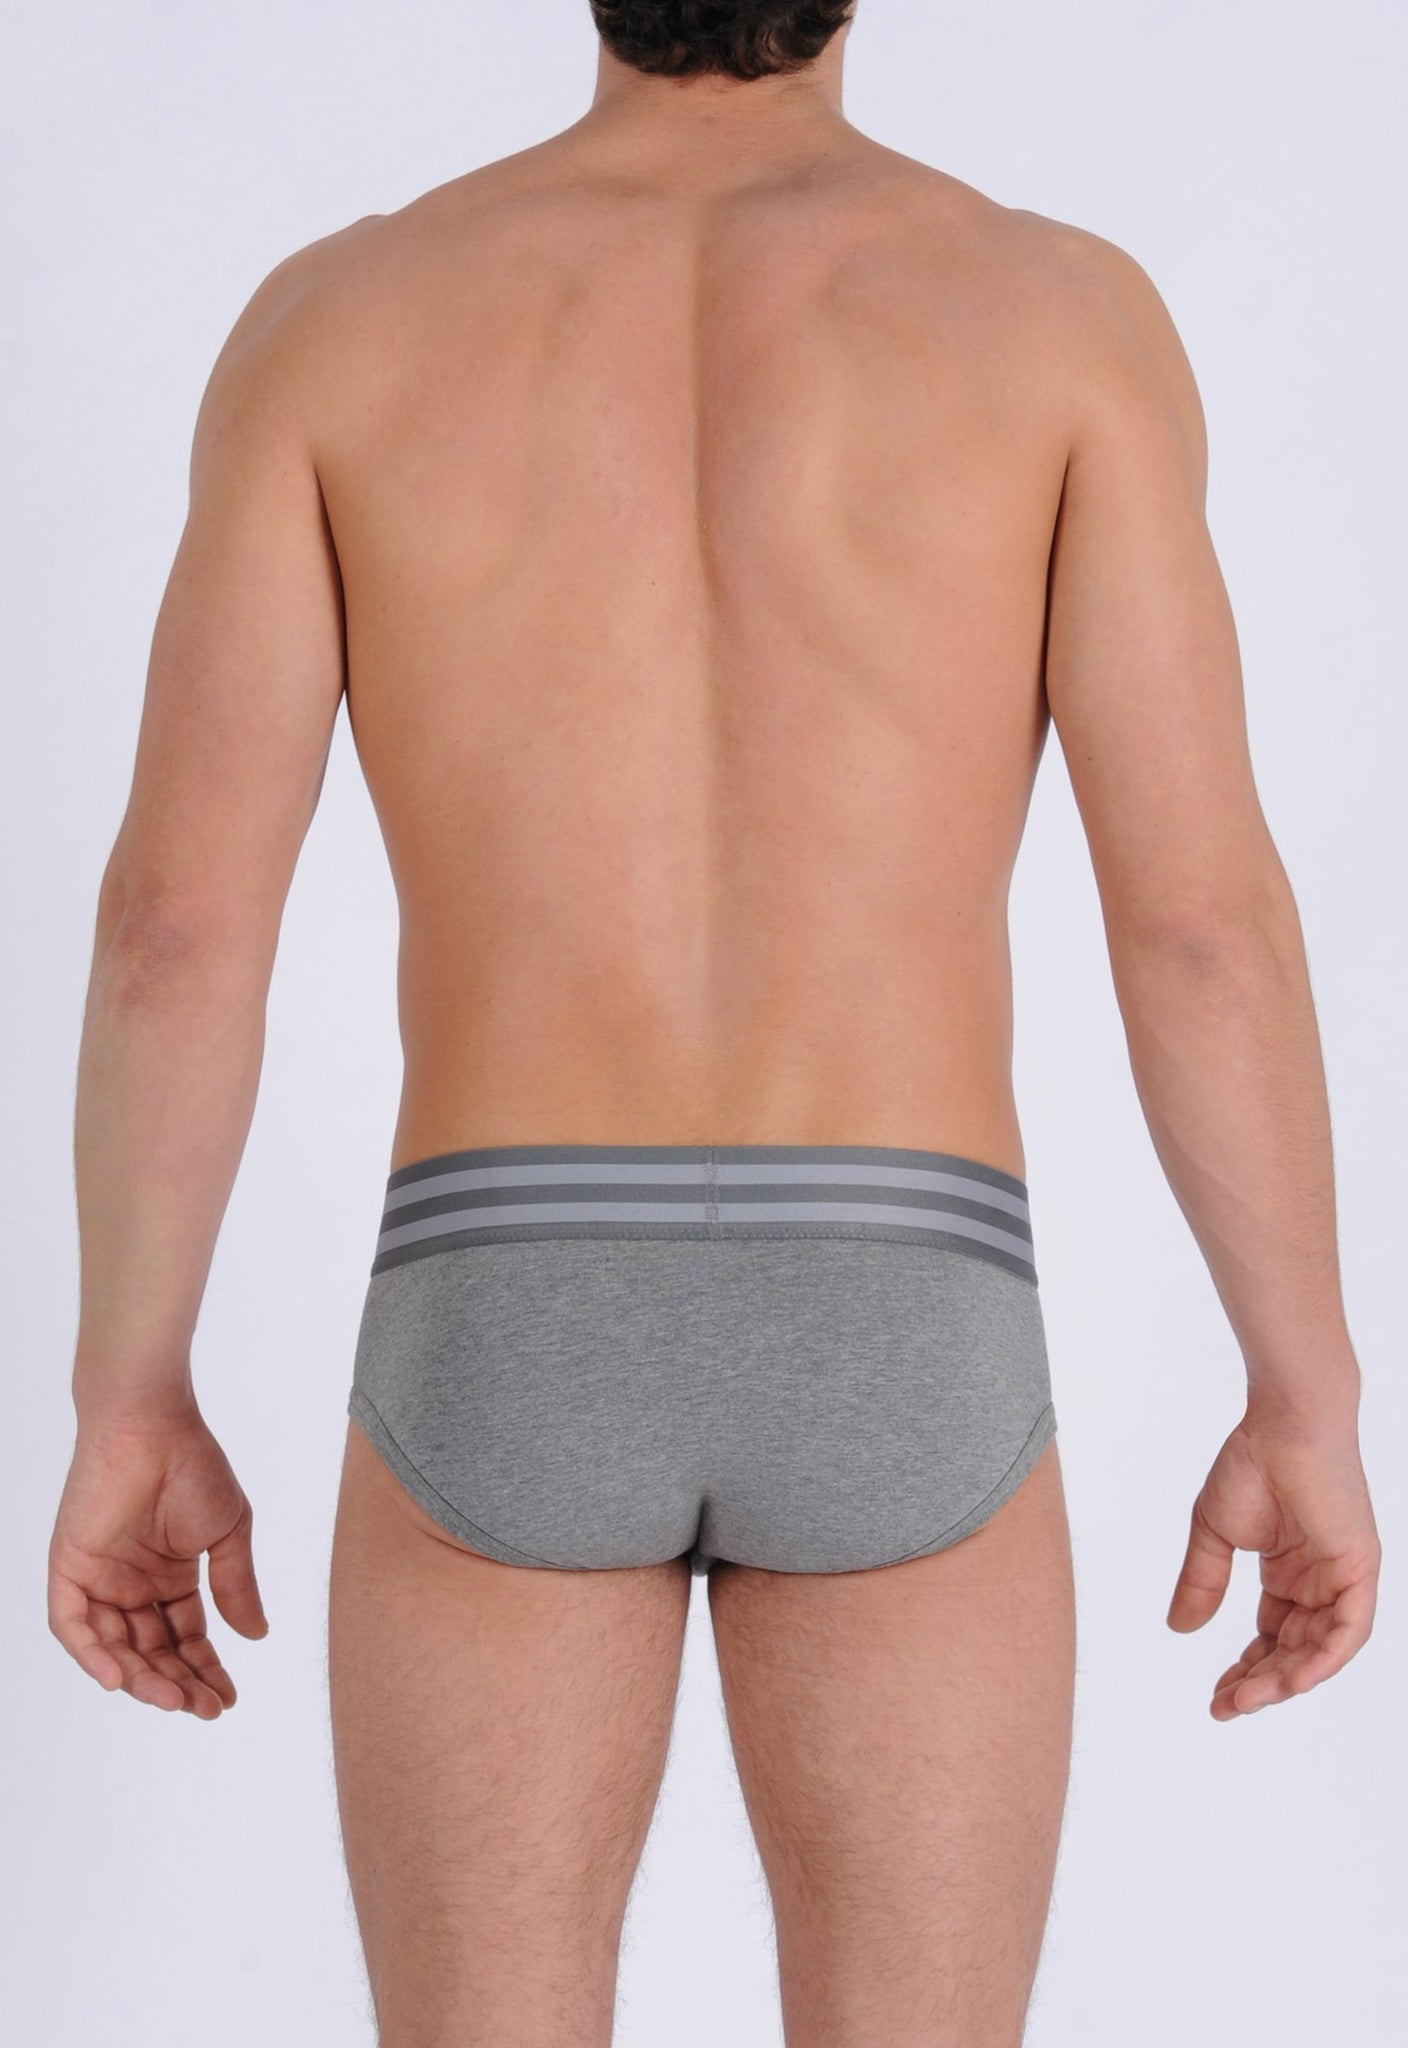 Ginch Gonch Men's Signature Series Underwear - Low Rise Brief grey printed thick waistband back